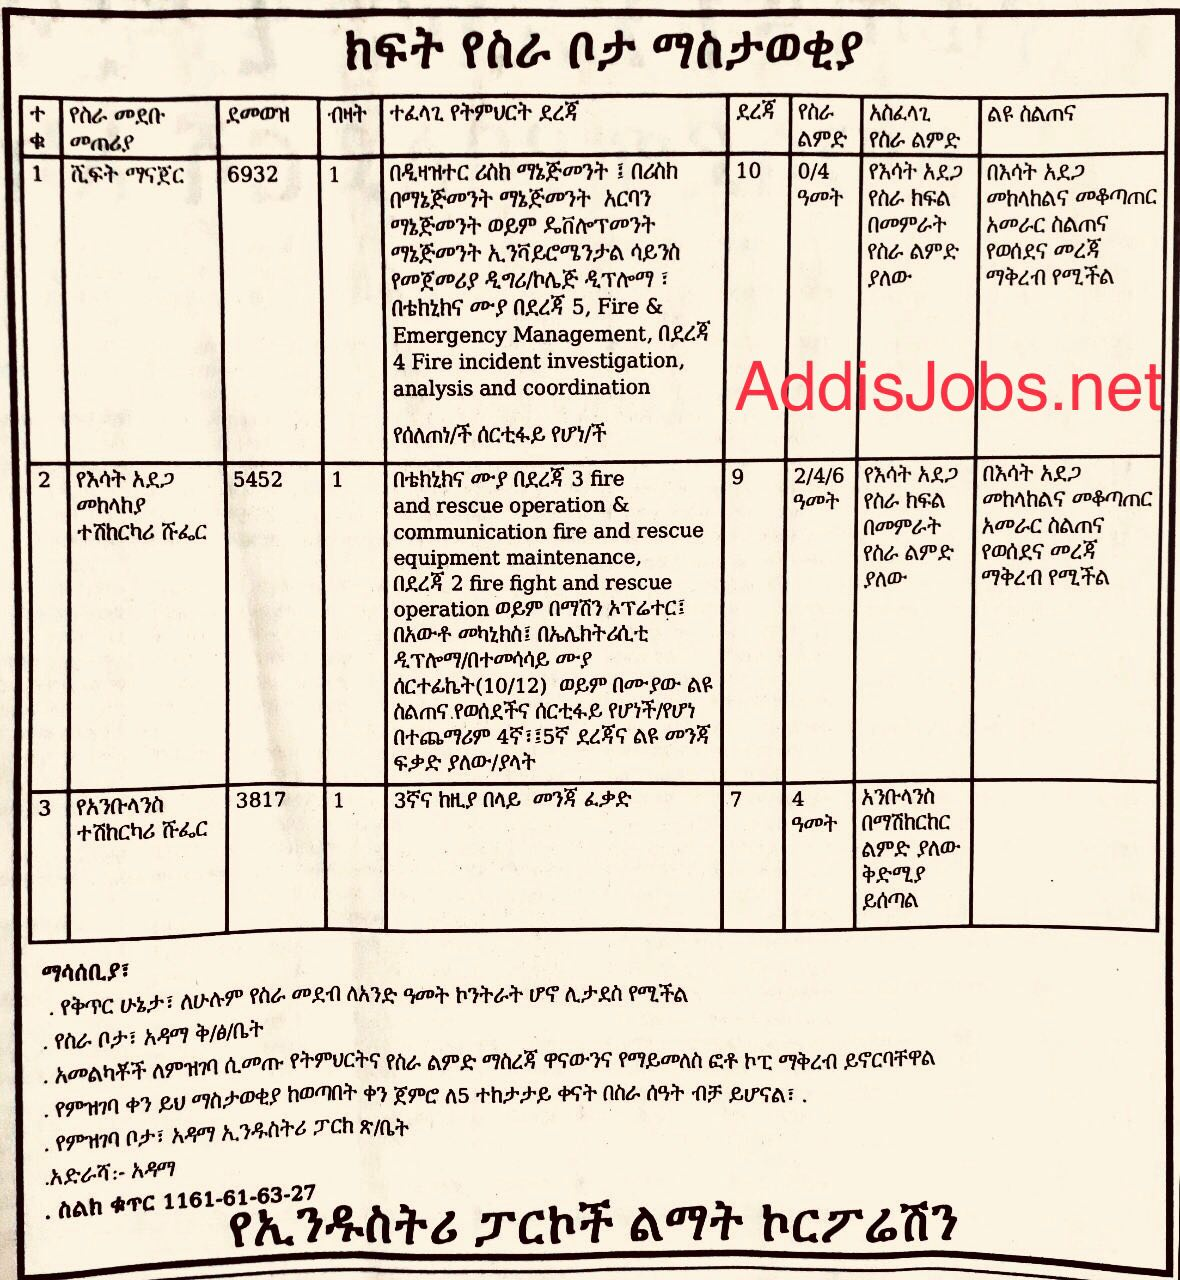 driving jobs in addis ababa - ethiojobs | AddisJobs